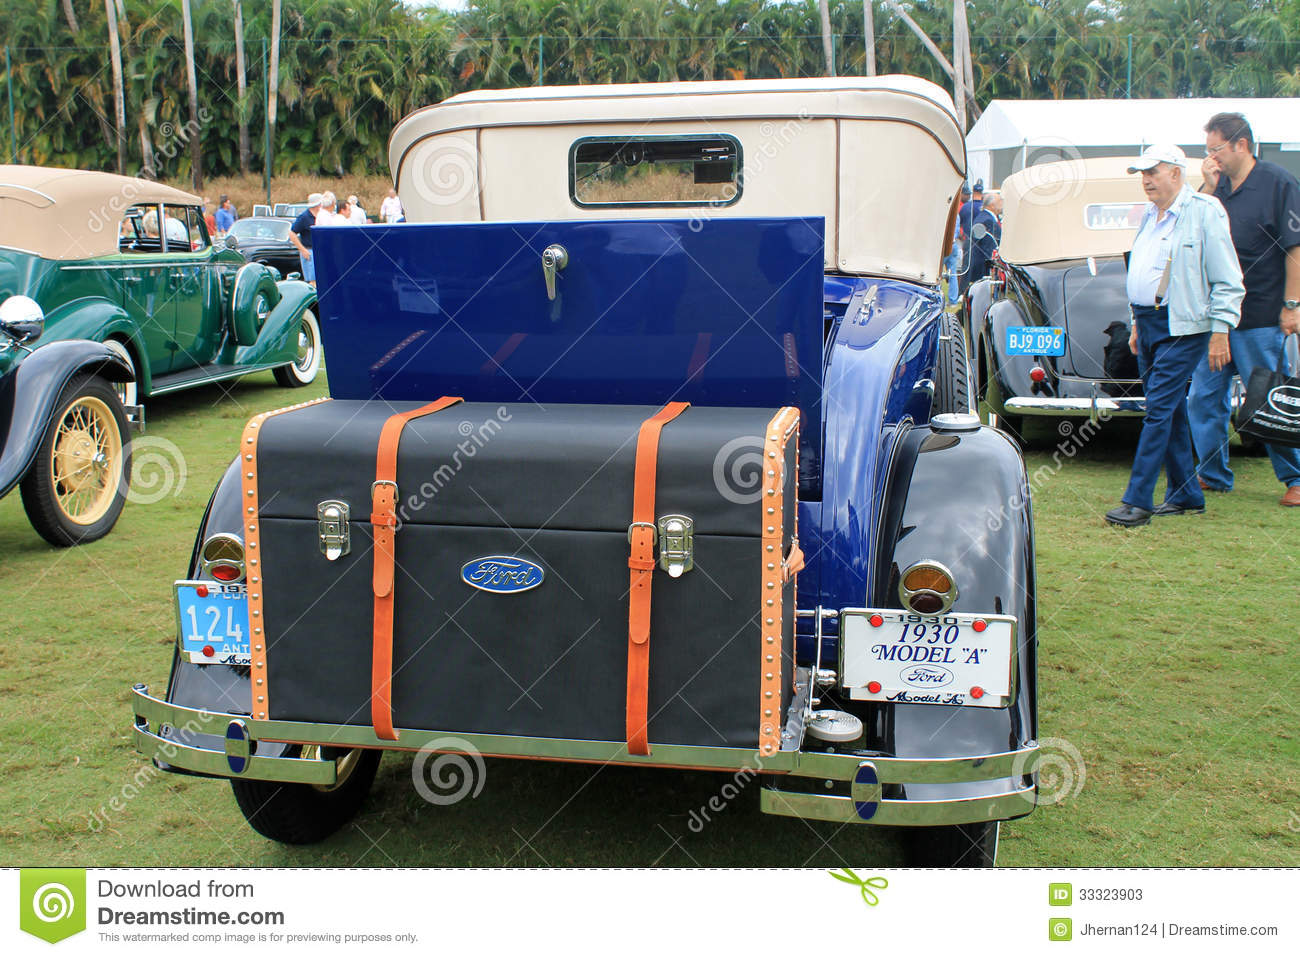 Physical Why Do Trunks For Cars Typically Open Upwards